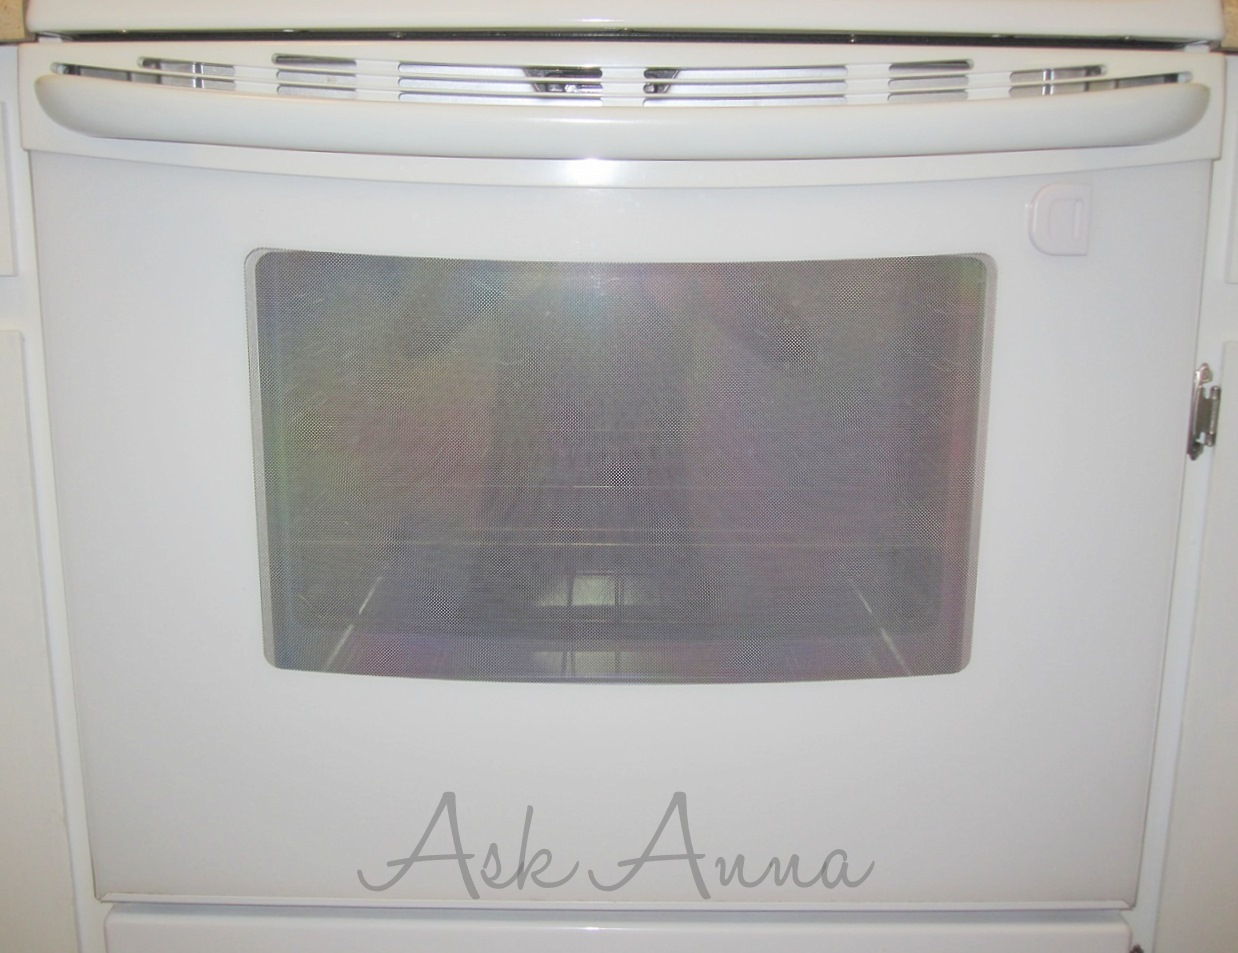 How to clean an oven - Ask Anna